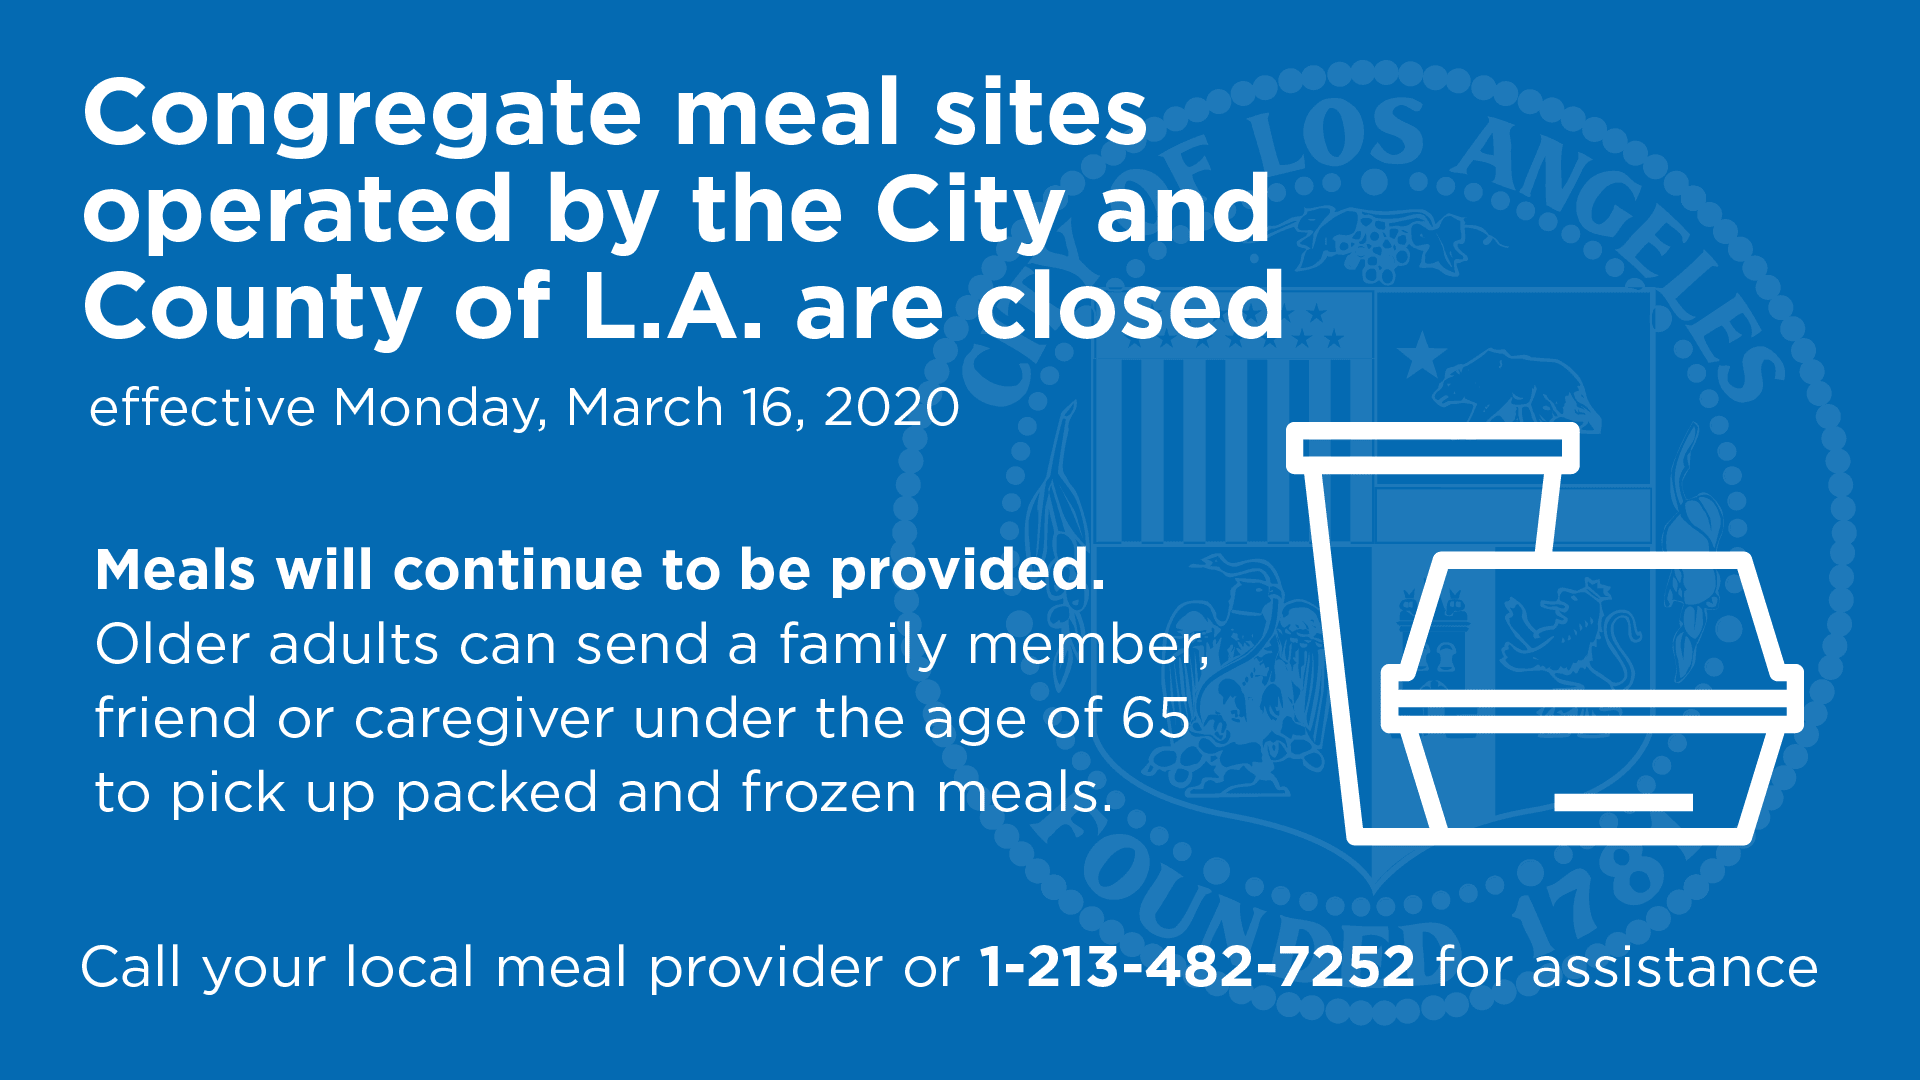 Senior Meals are available, but facilities are closed. Call 213-482-7252